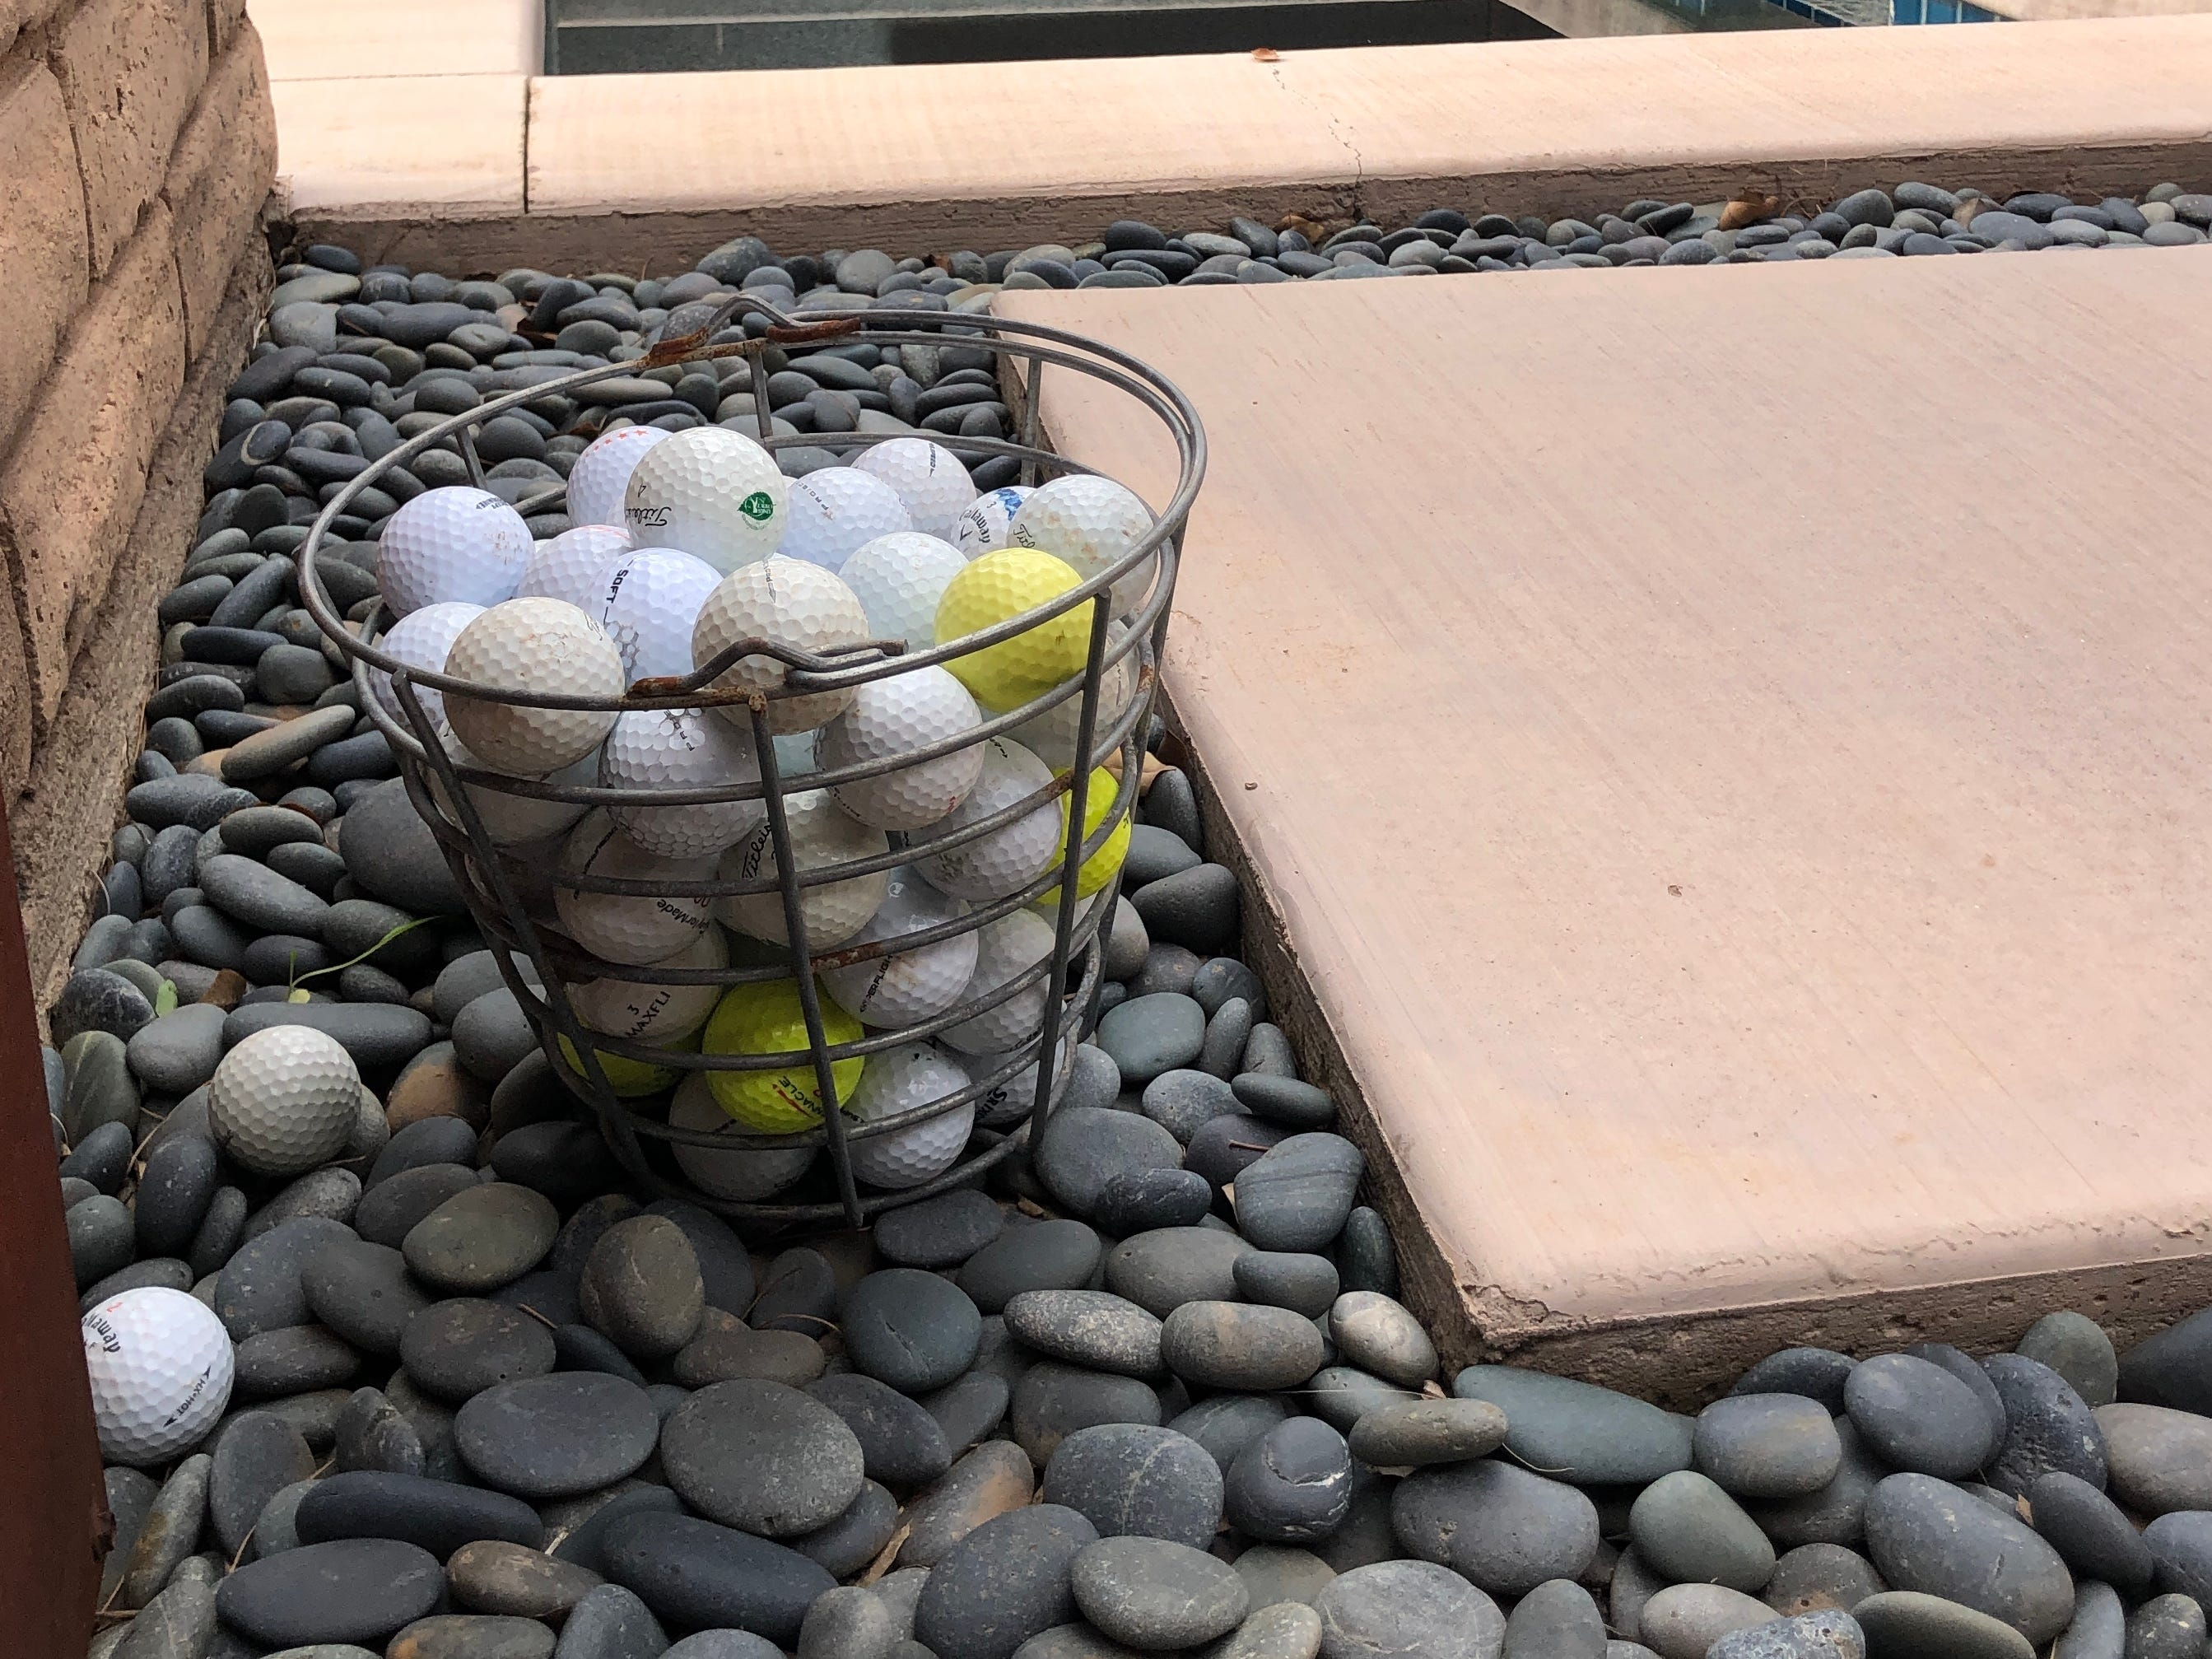 Vierra corralled a few golf balls that ended up in his pool and spa from the adjacent Shalimar Golf Course.